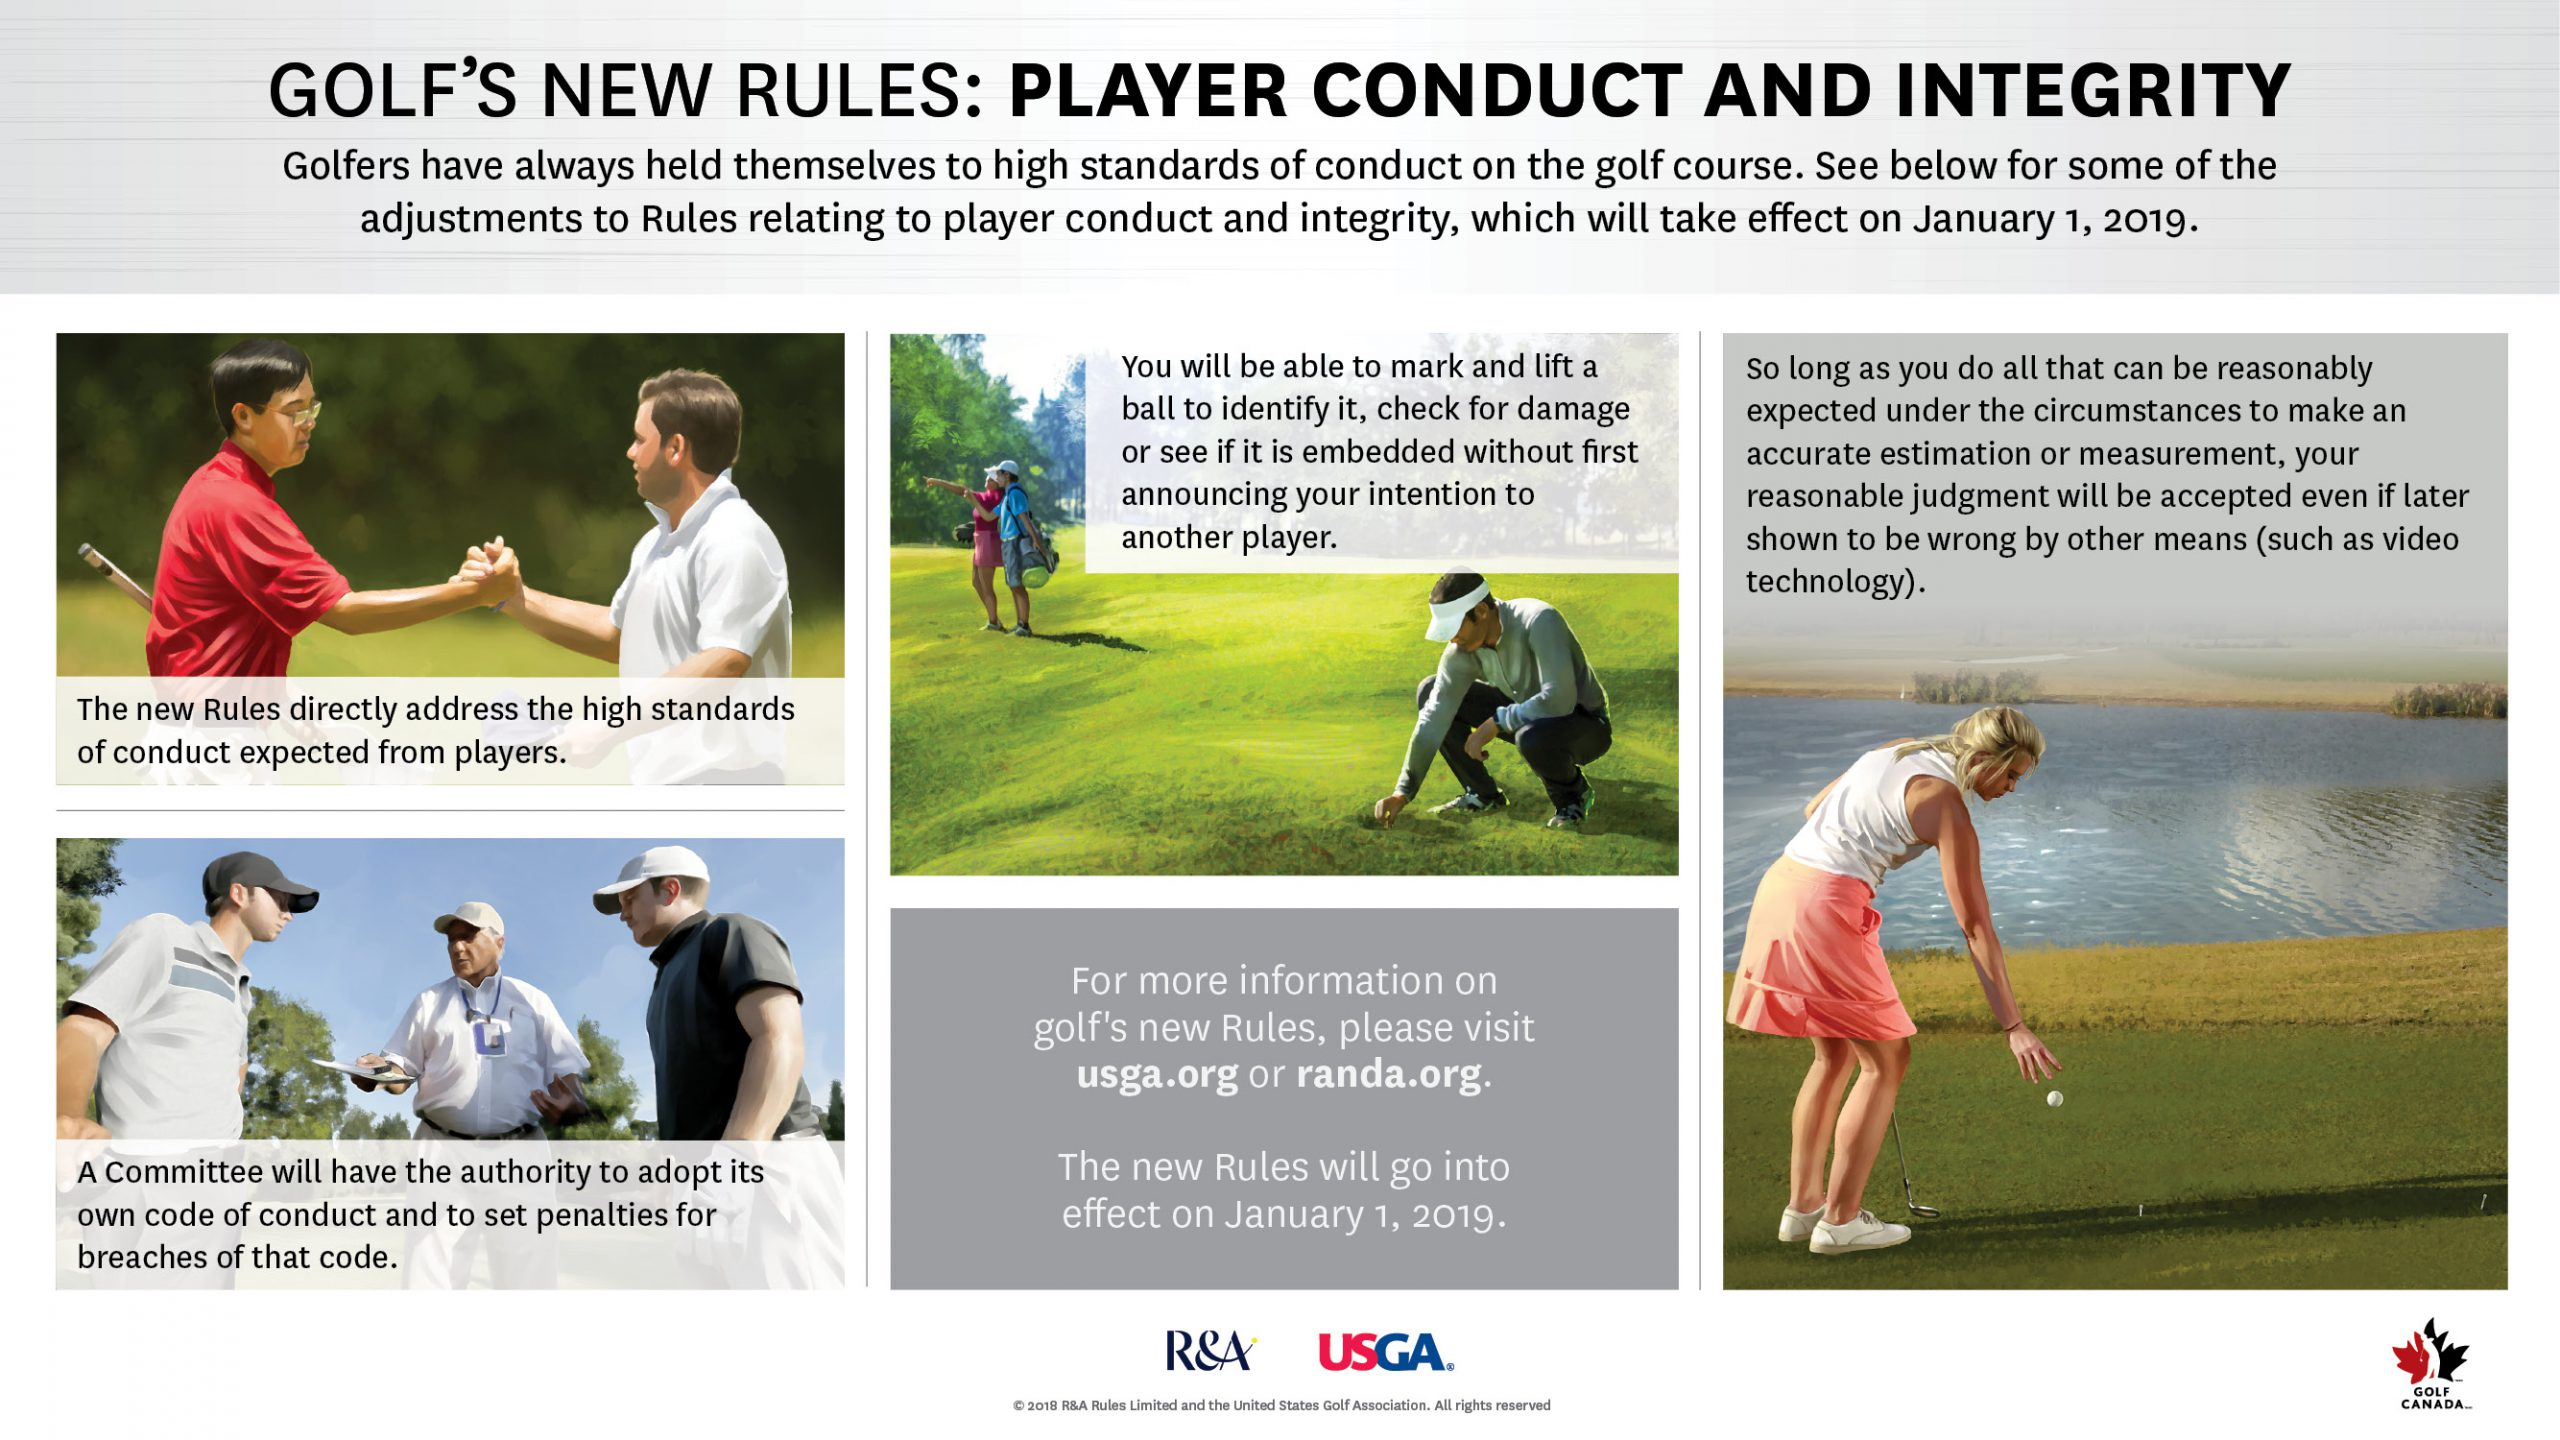 Modernized Rules of Golf - Player conduct